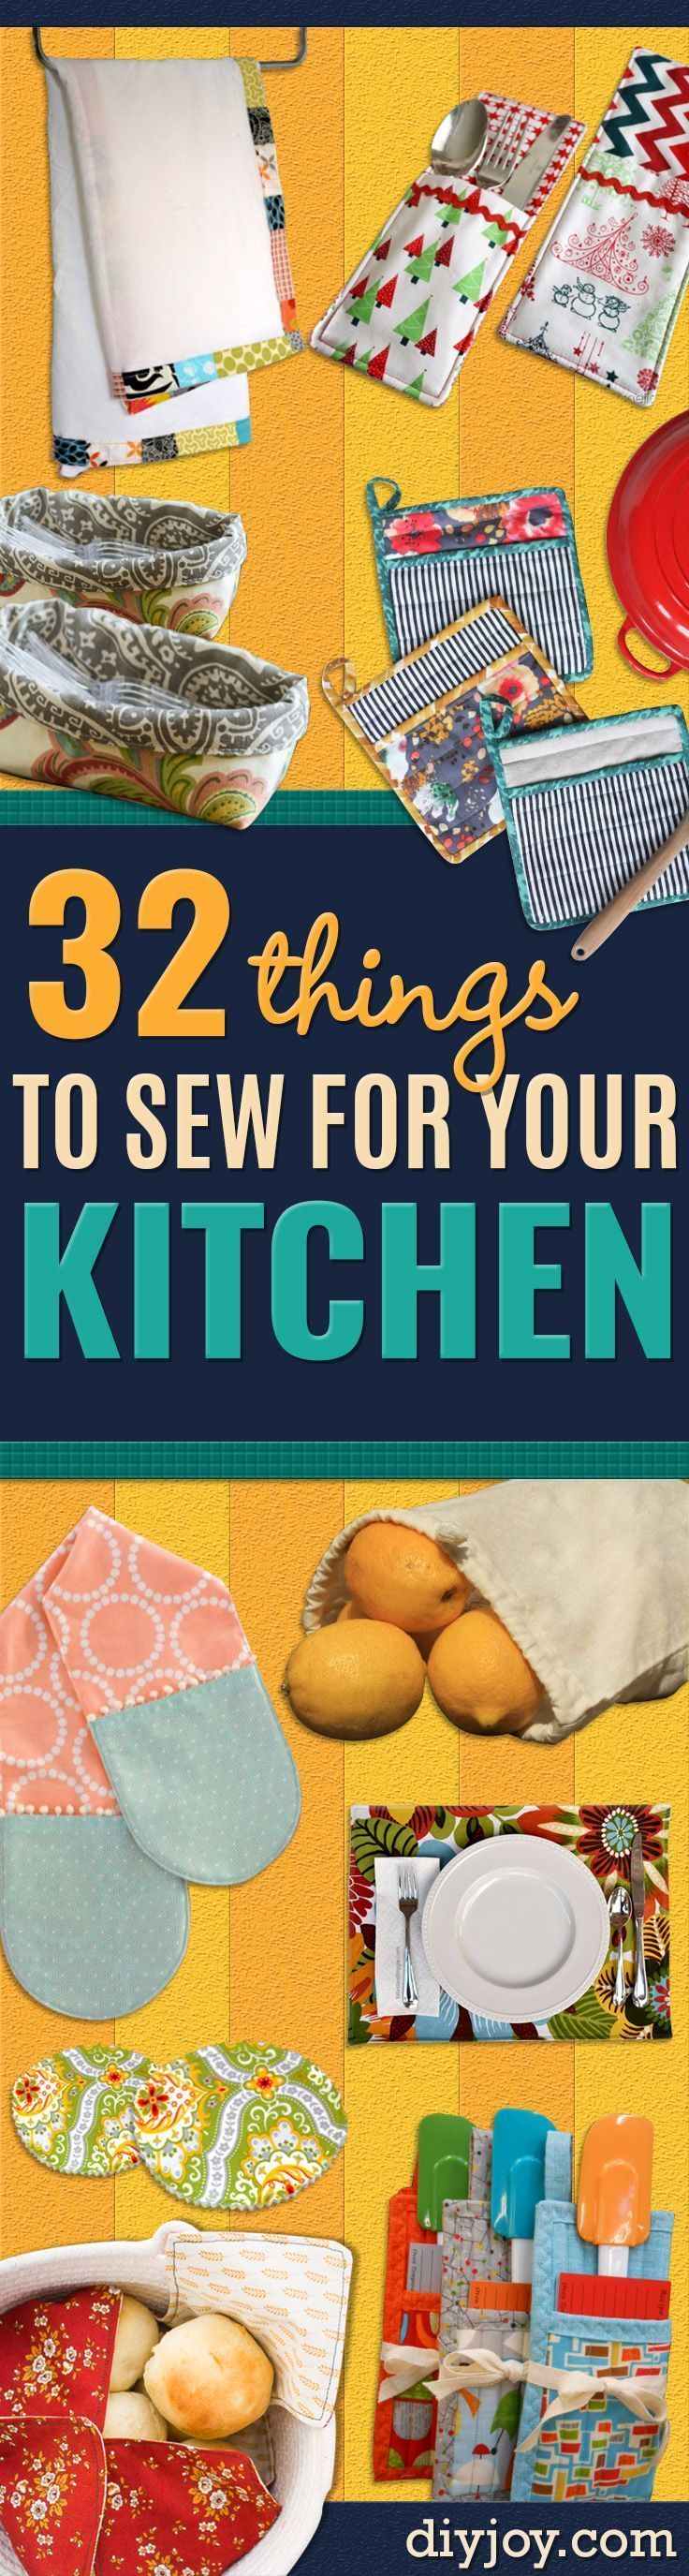 78312 best sewing tips images on pinterest sewing ideas sewing diy sewing projects for the kitchen easy sewing tutorials and patterns for towels napkinds aprons and cool christmas gifts for friends and family jeuxipadfo Images